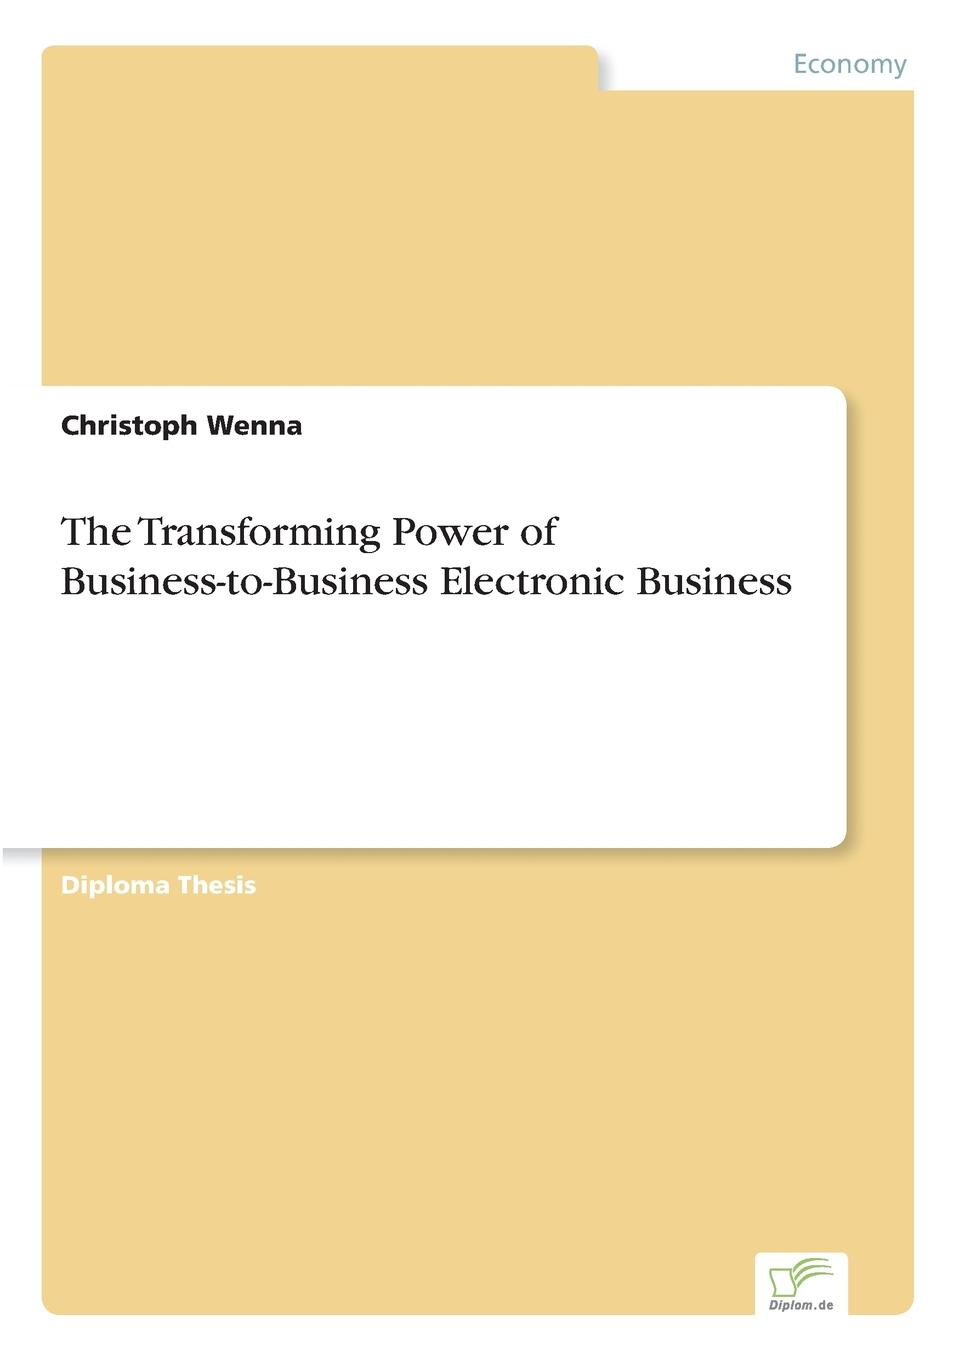 Christoph Wenna The Transforming Power of Business-to-Business Electronic Business harry b demaio cissp b2b and beyond new business models built on trust